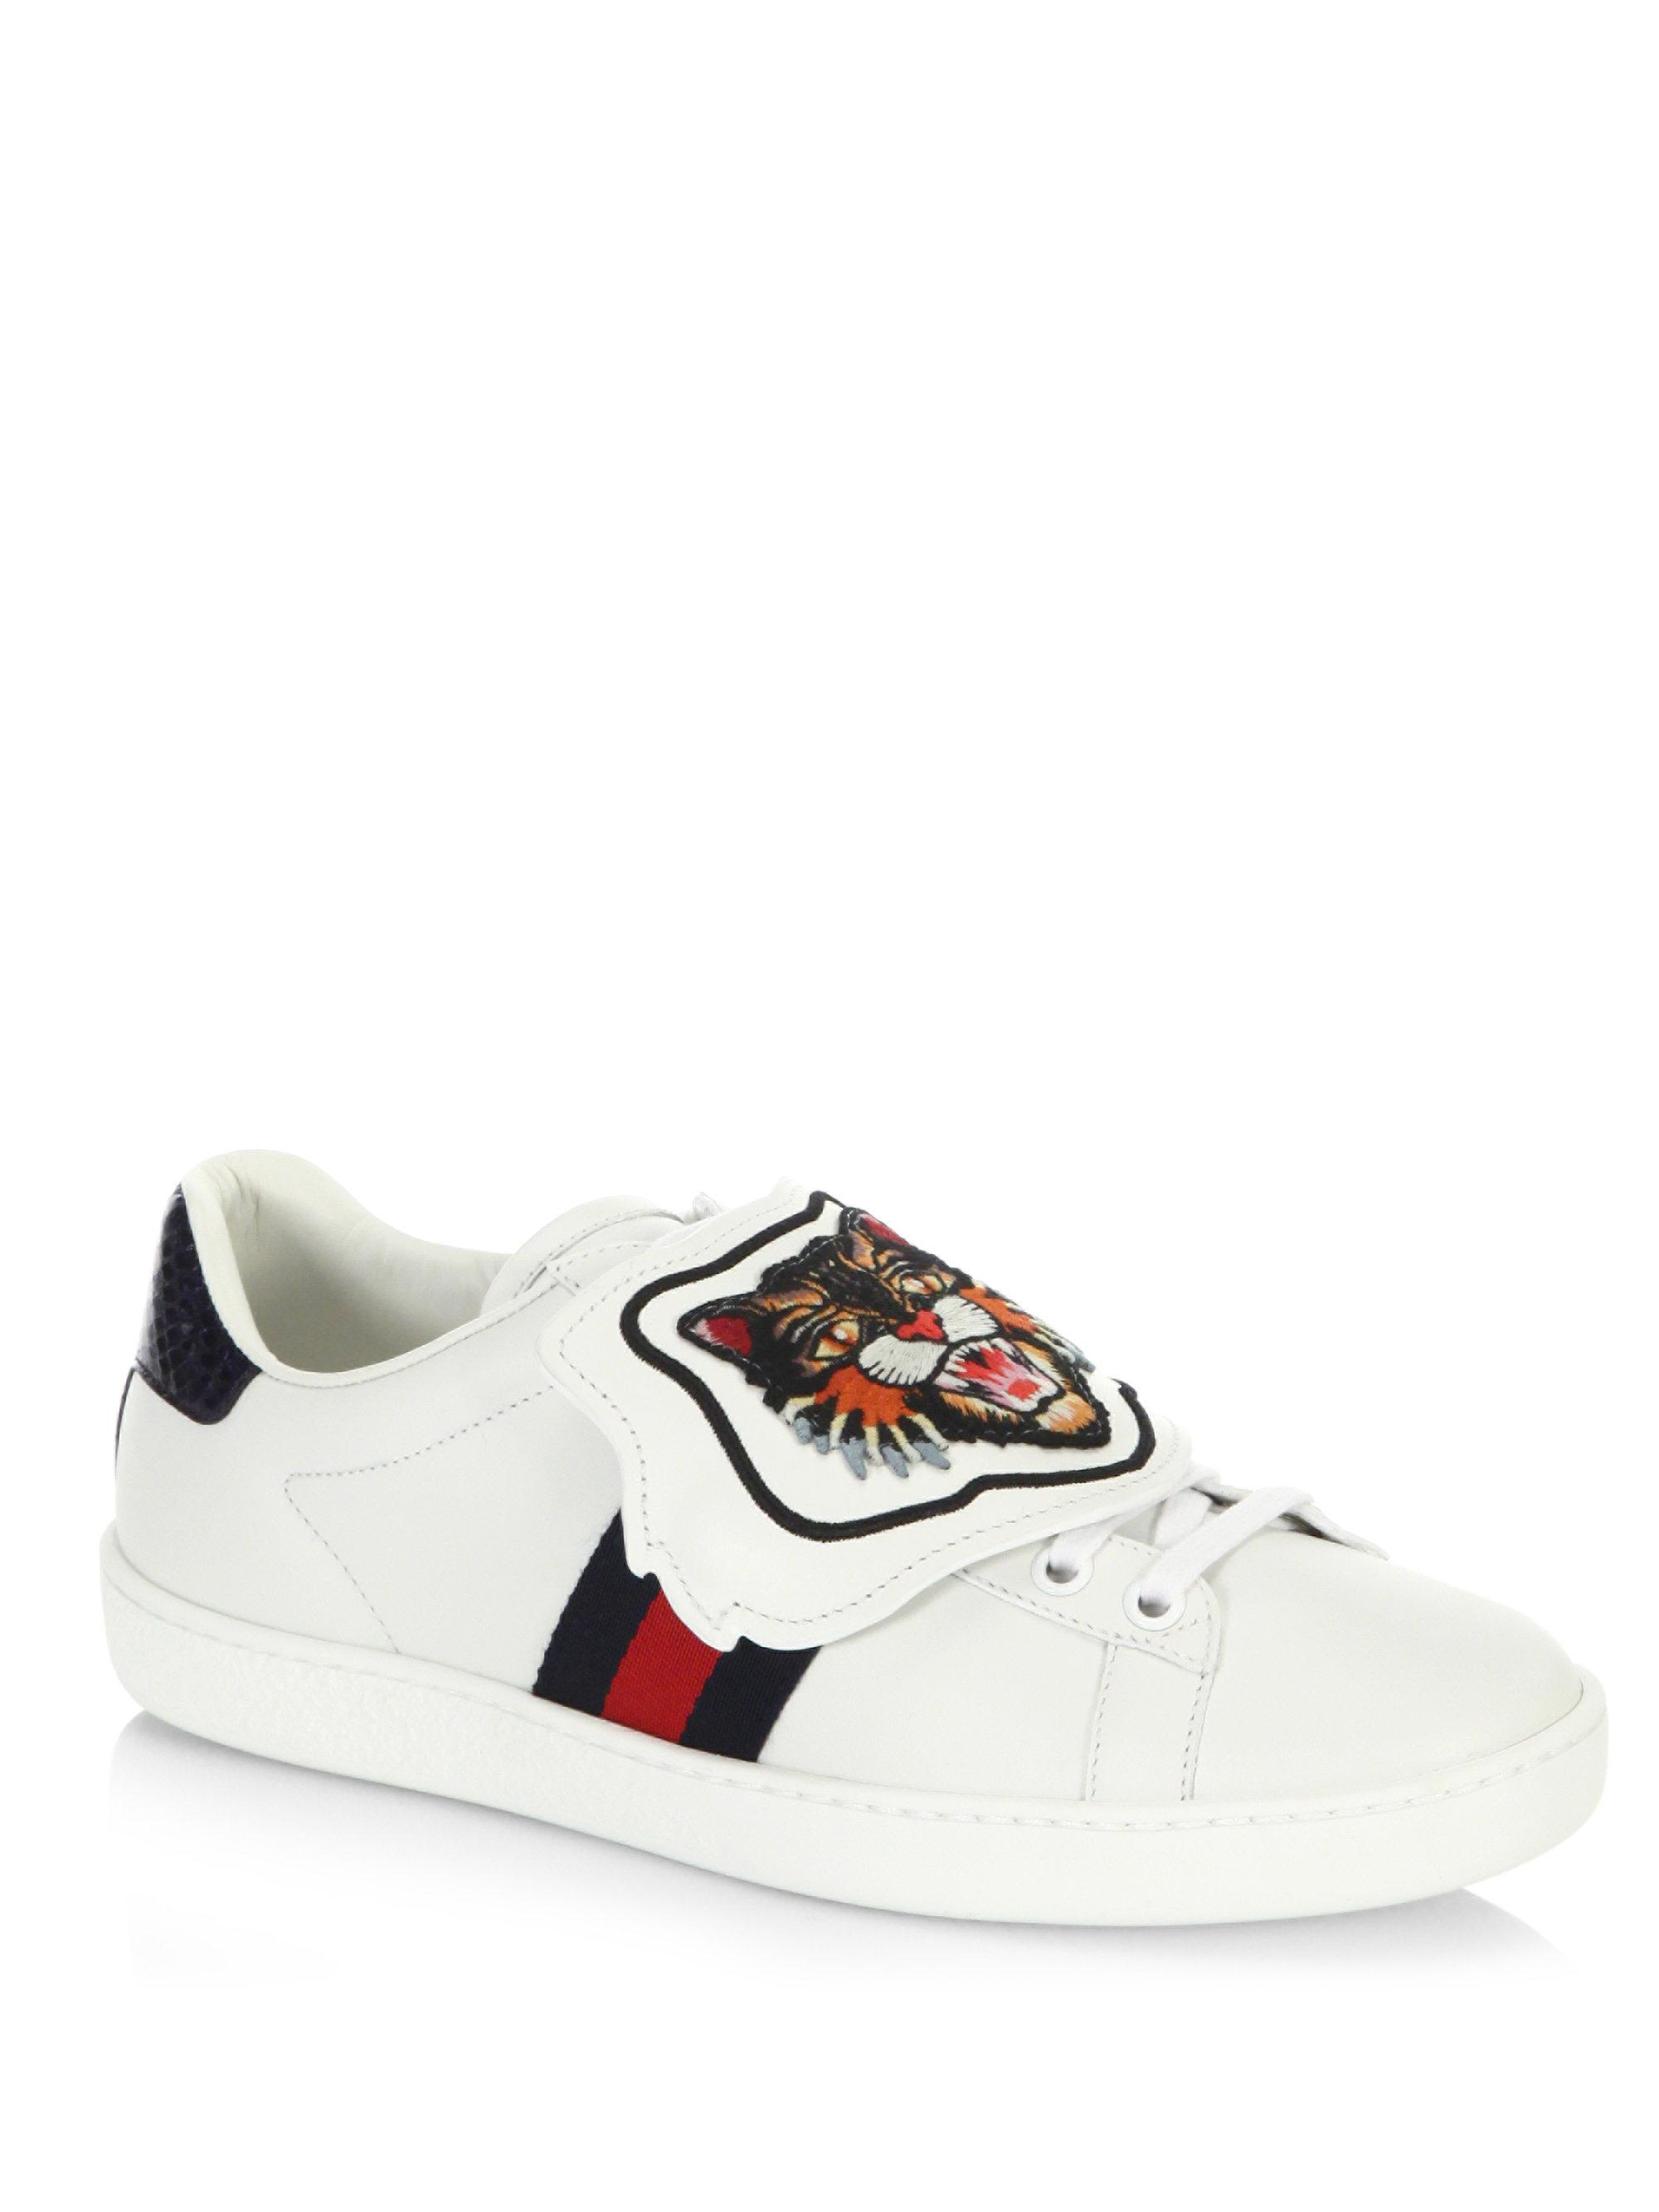 Lyst Gucci New Ace Sneakers With Lion Patch In White